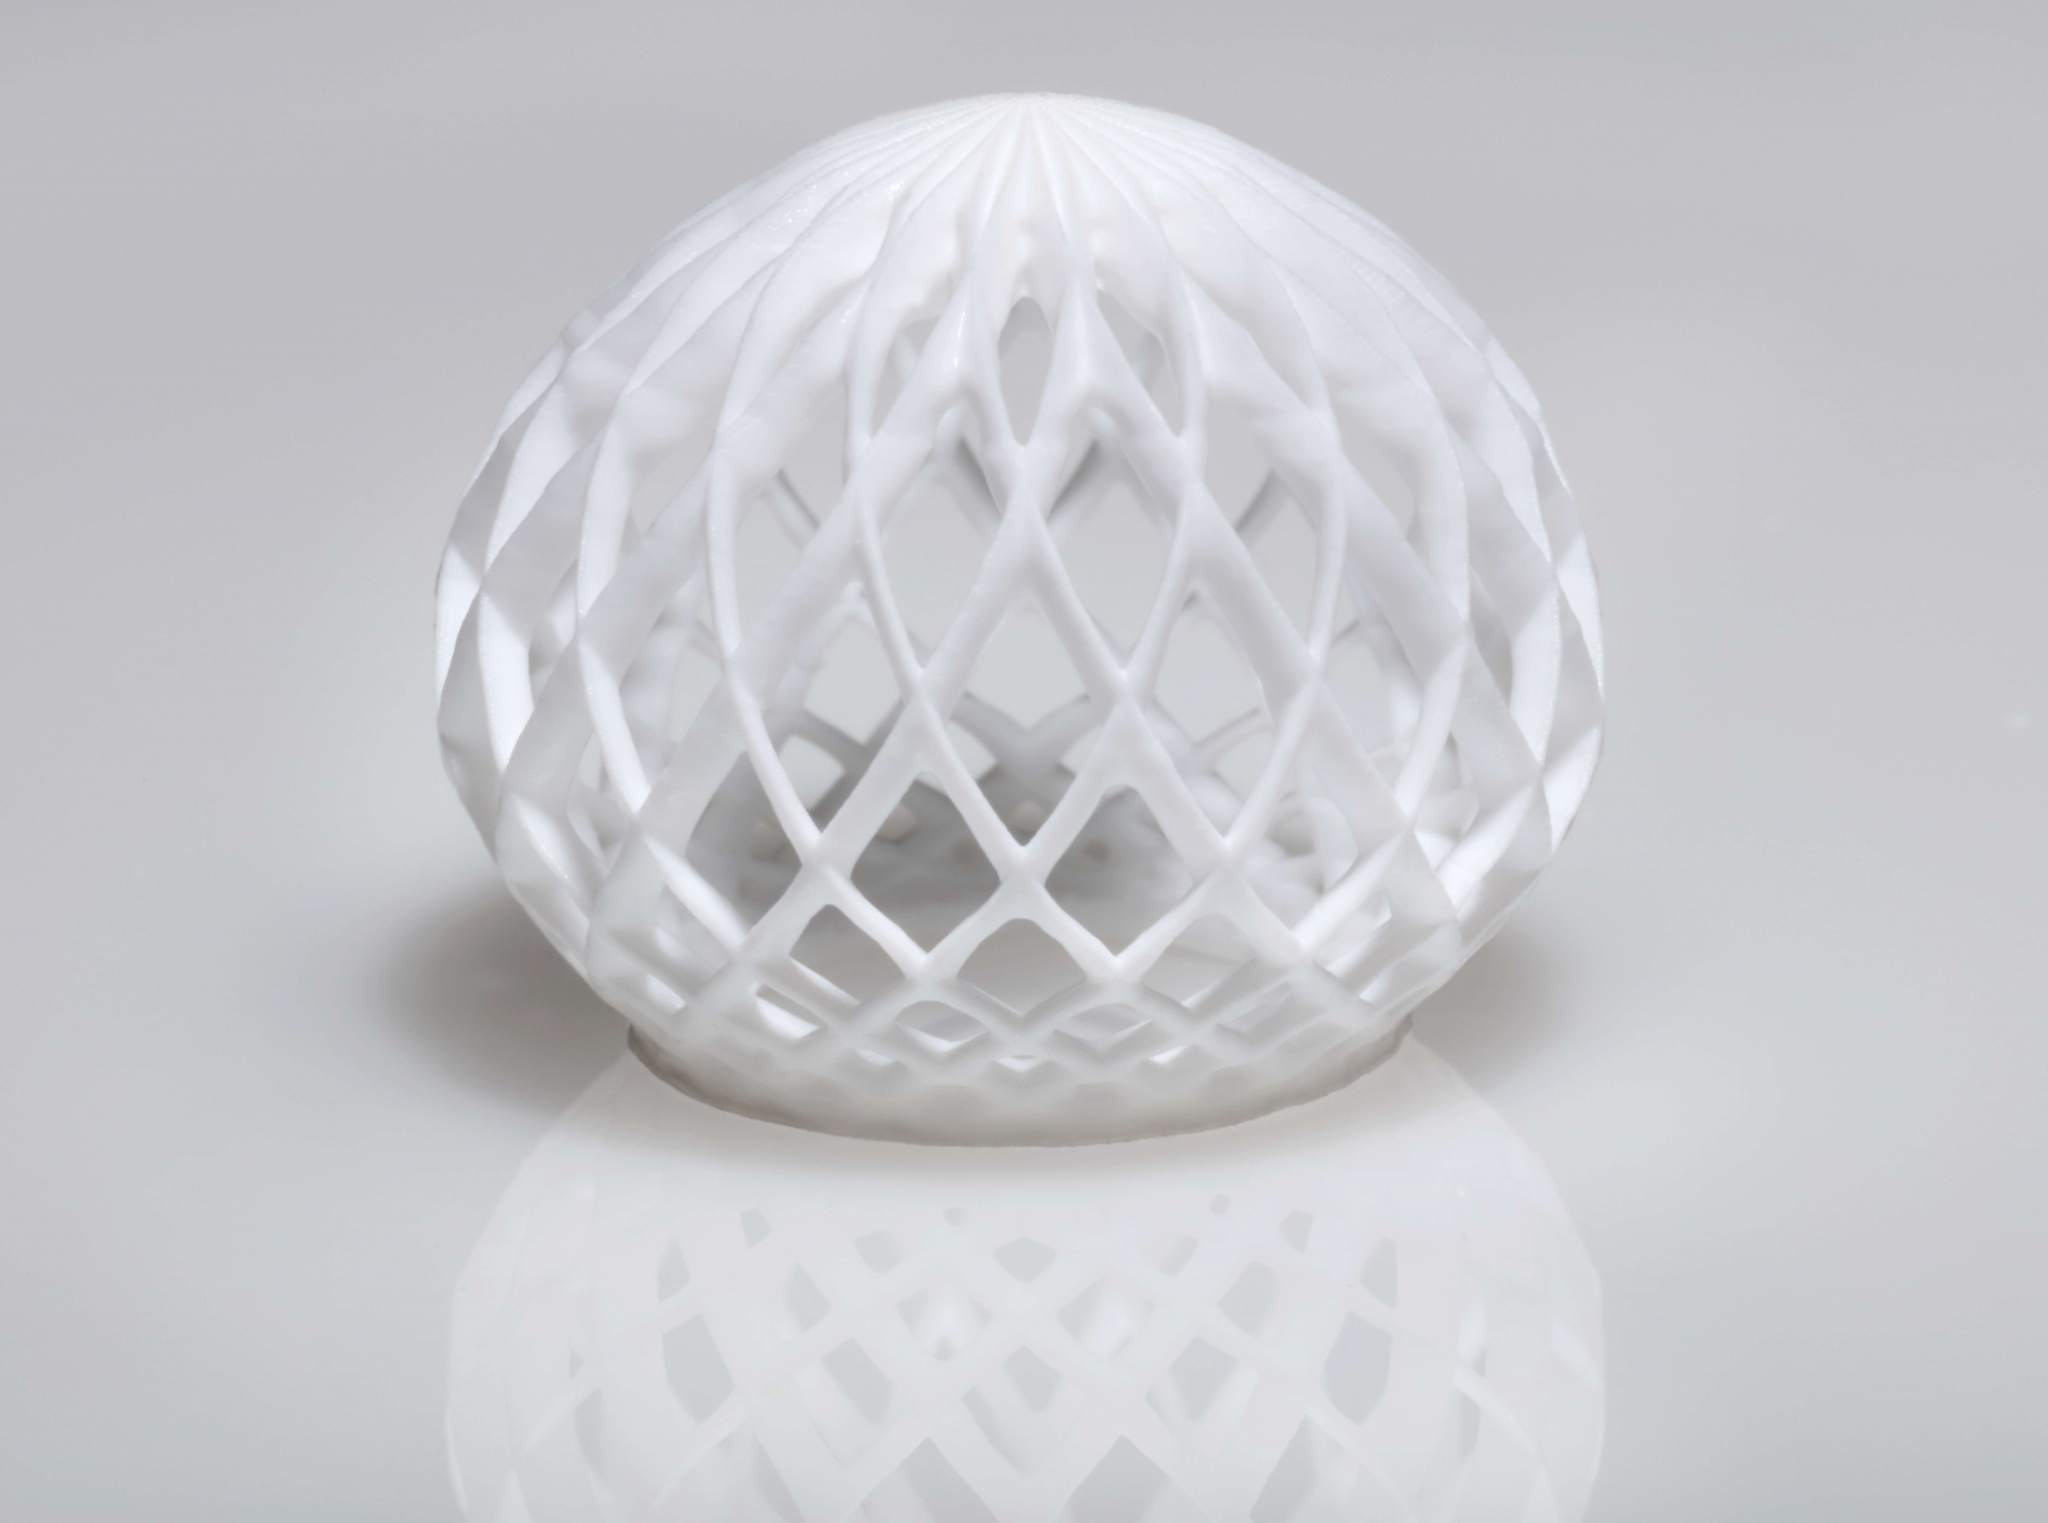 An example of a complex structure 3M are able to produce using fluoropolymers. Image via 3M.